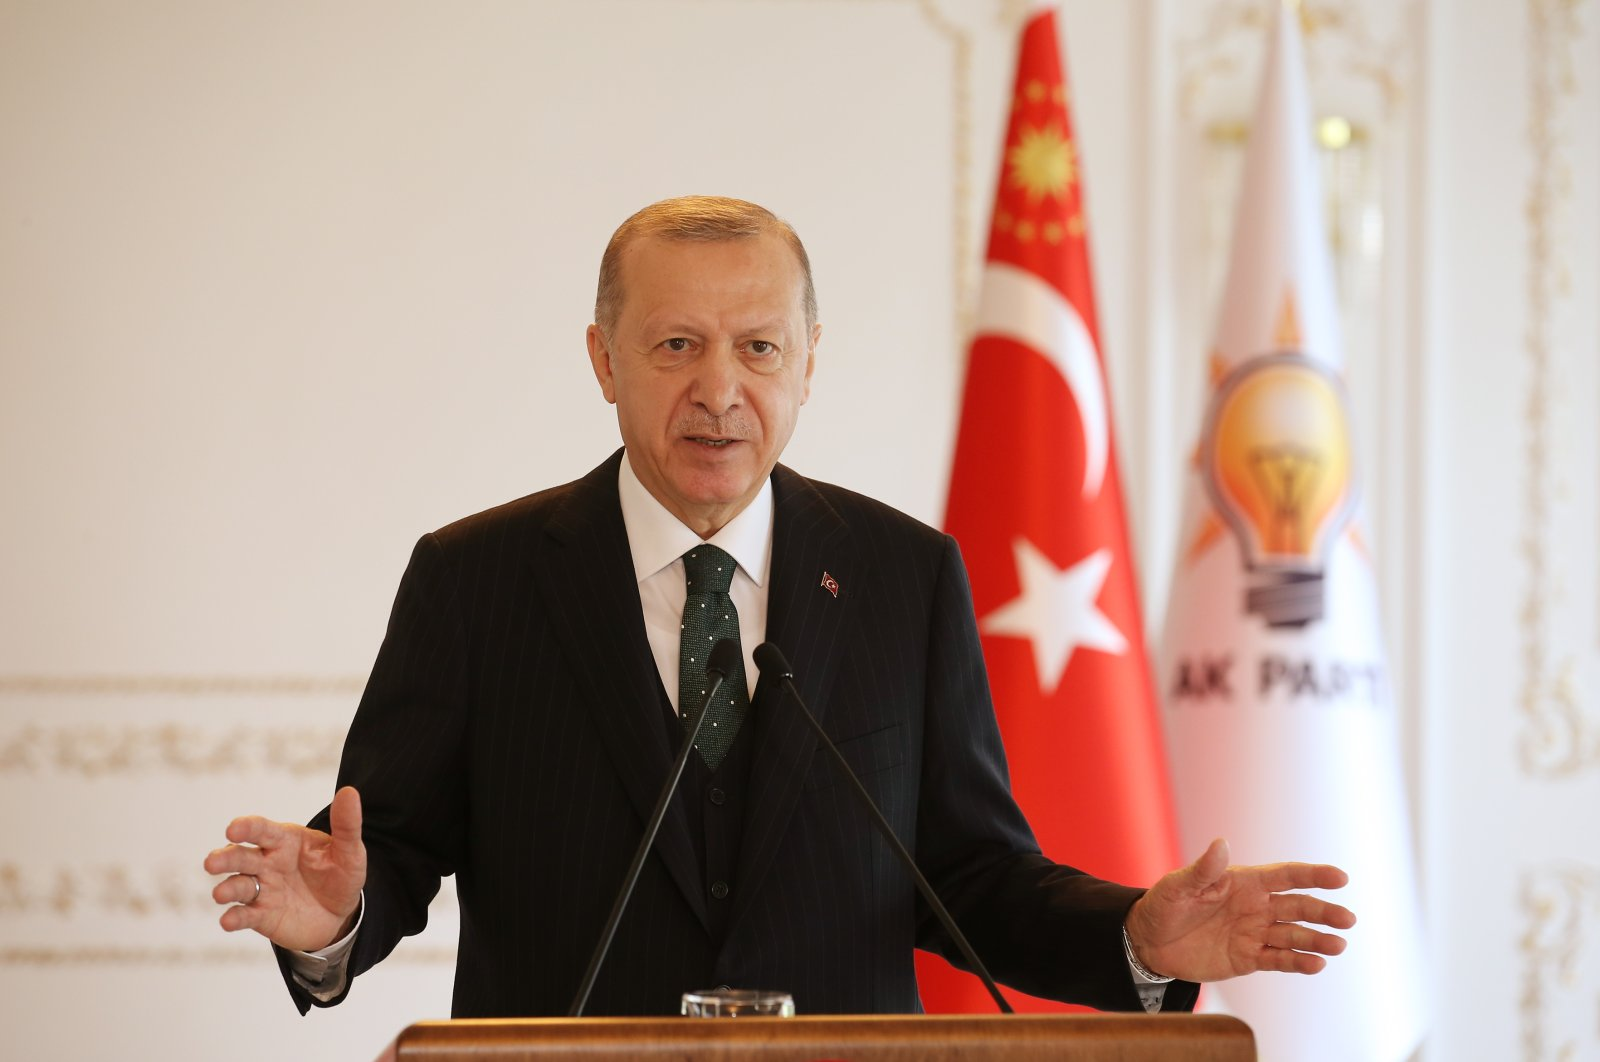 President Recep Tayyip Erdoğan speaks via videoconference to ruling Justice and Development Party (AK Party) members from the Vahdettin Pavilion, Istanbul, Turkey, Nov. 22, 2020. (AP Photo)